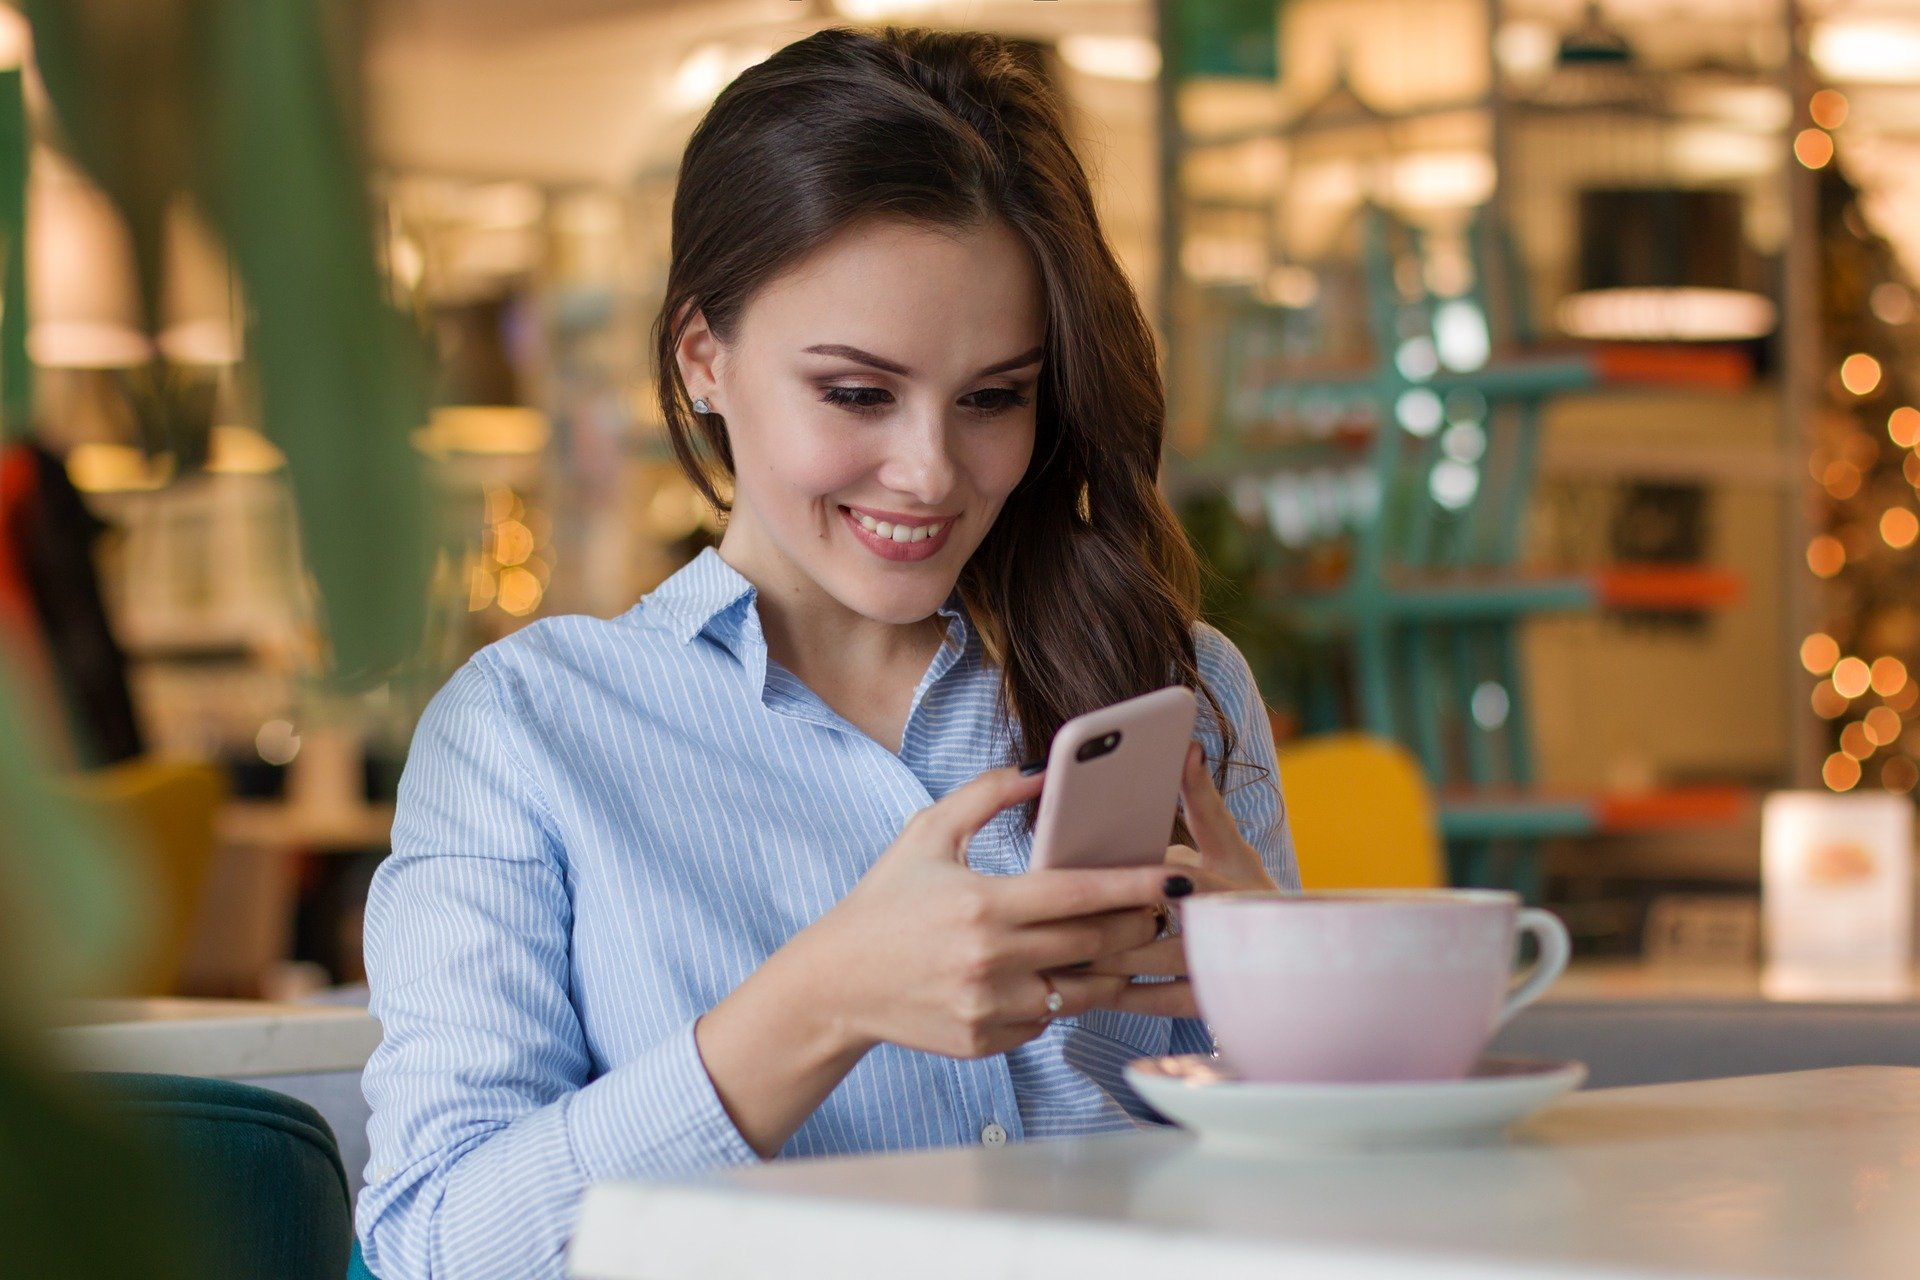 Happy woman with smartphone at restaurant